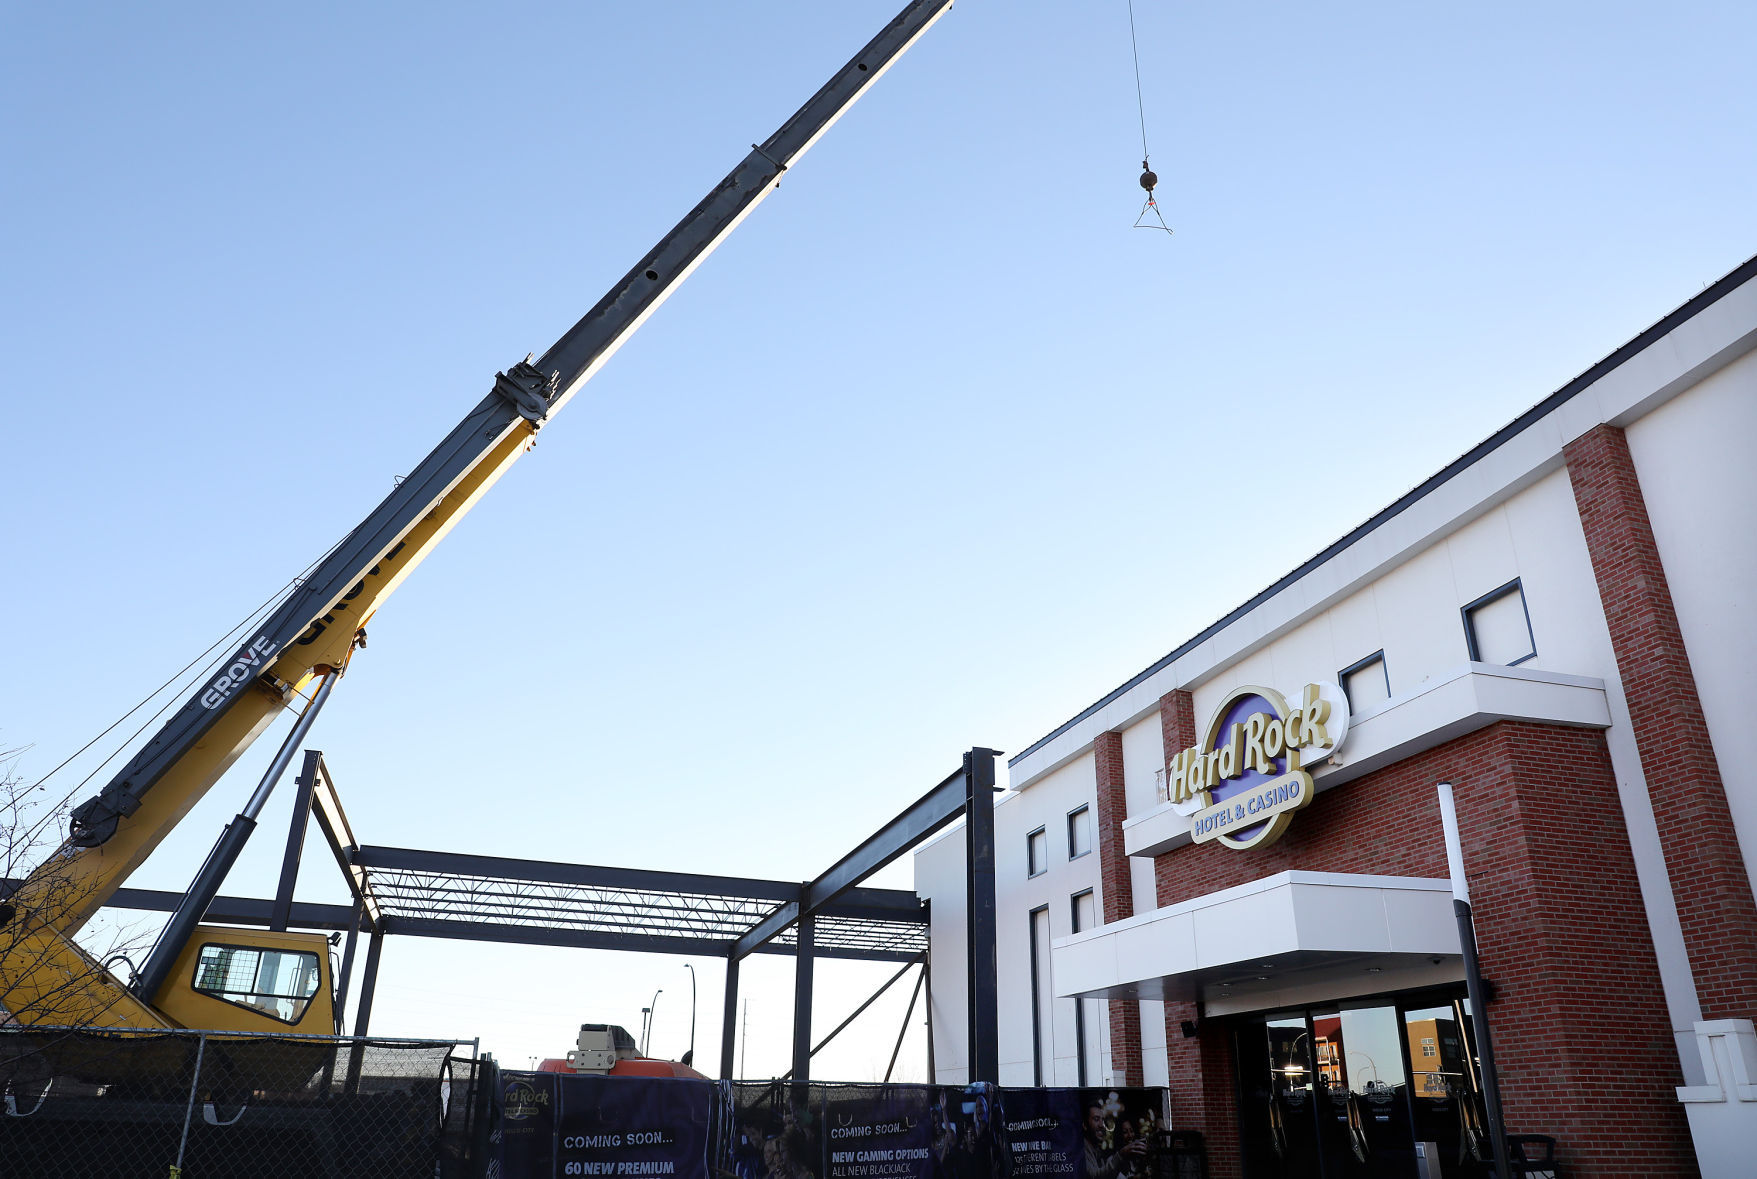 progress hard rock expansion coming along progress retail rh siouxcityjournal com